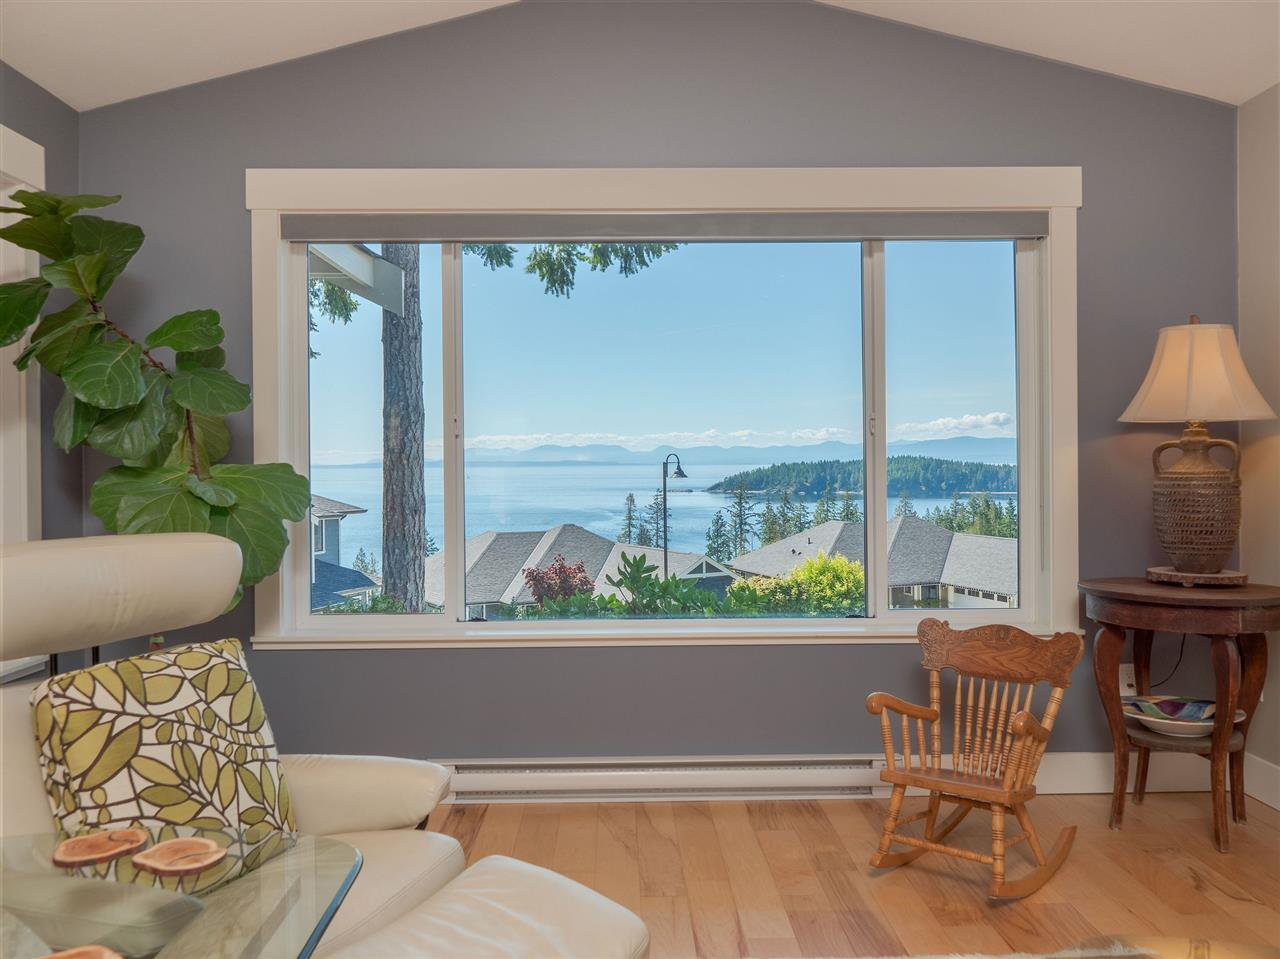 "Main Photo: 5557 PEREGRINE Crescent in Sechelt: Sechelt District House for sale in ""SilverStone Heights"" (Sunshine Coast)  : MLS®# R2492023"